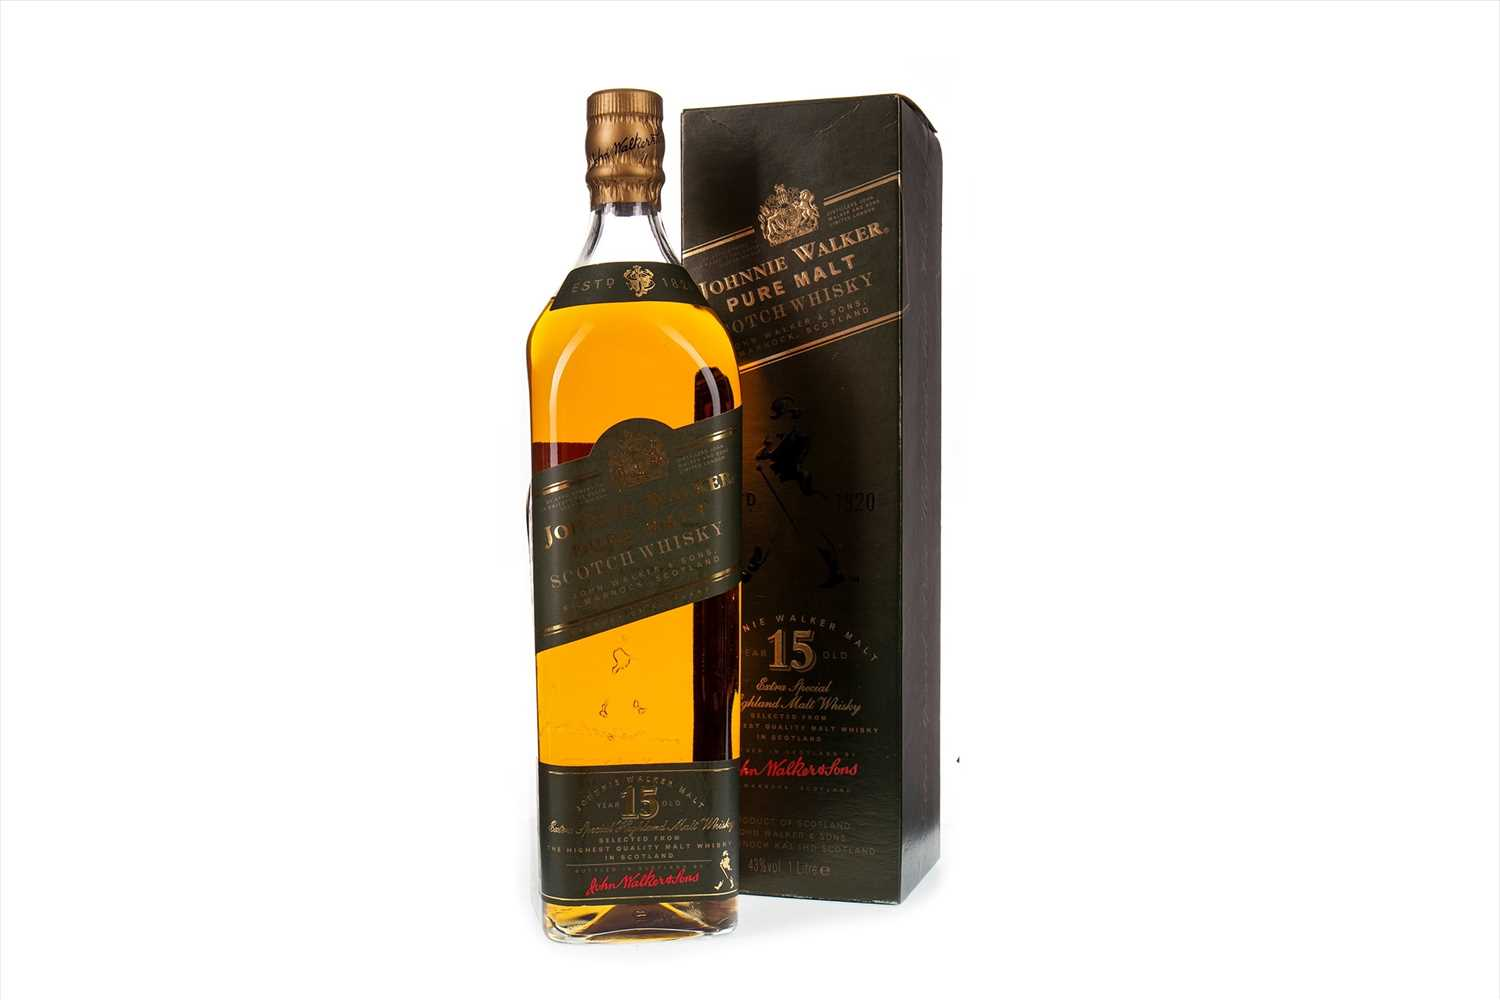 Lot 402-JOHNNIE WALKER GREEN LABEL AGED 15 YEARS - ONE LITRE